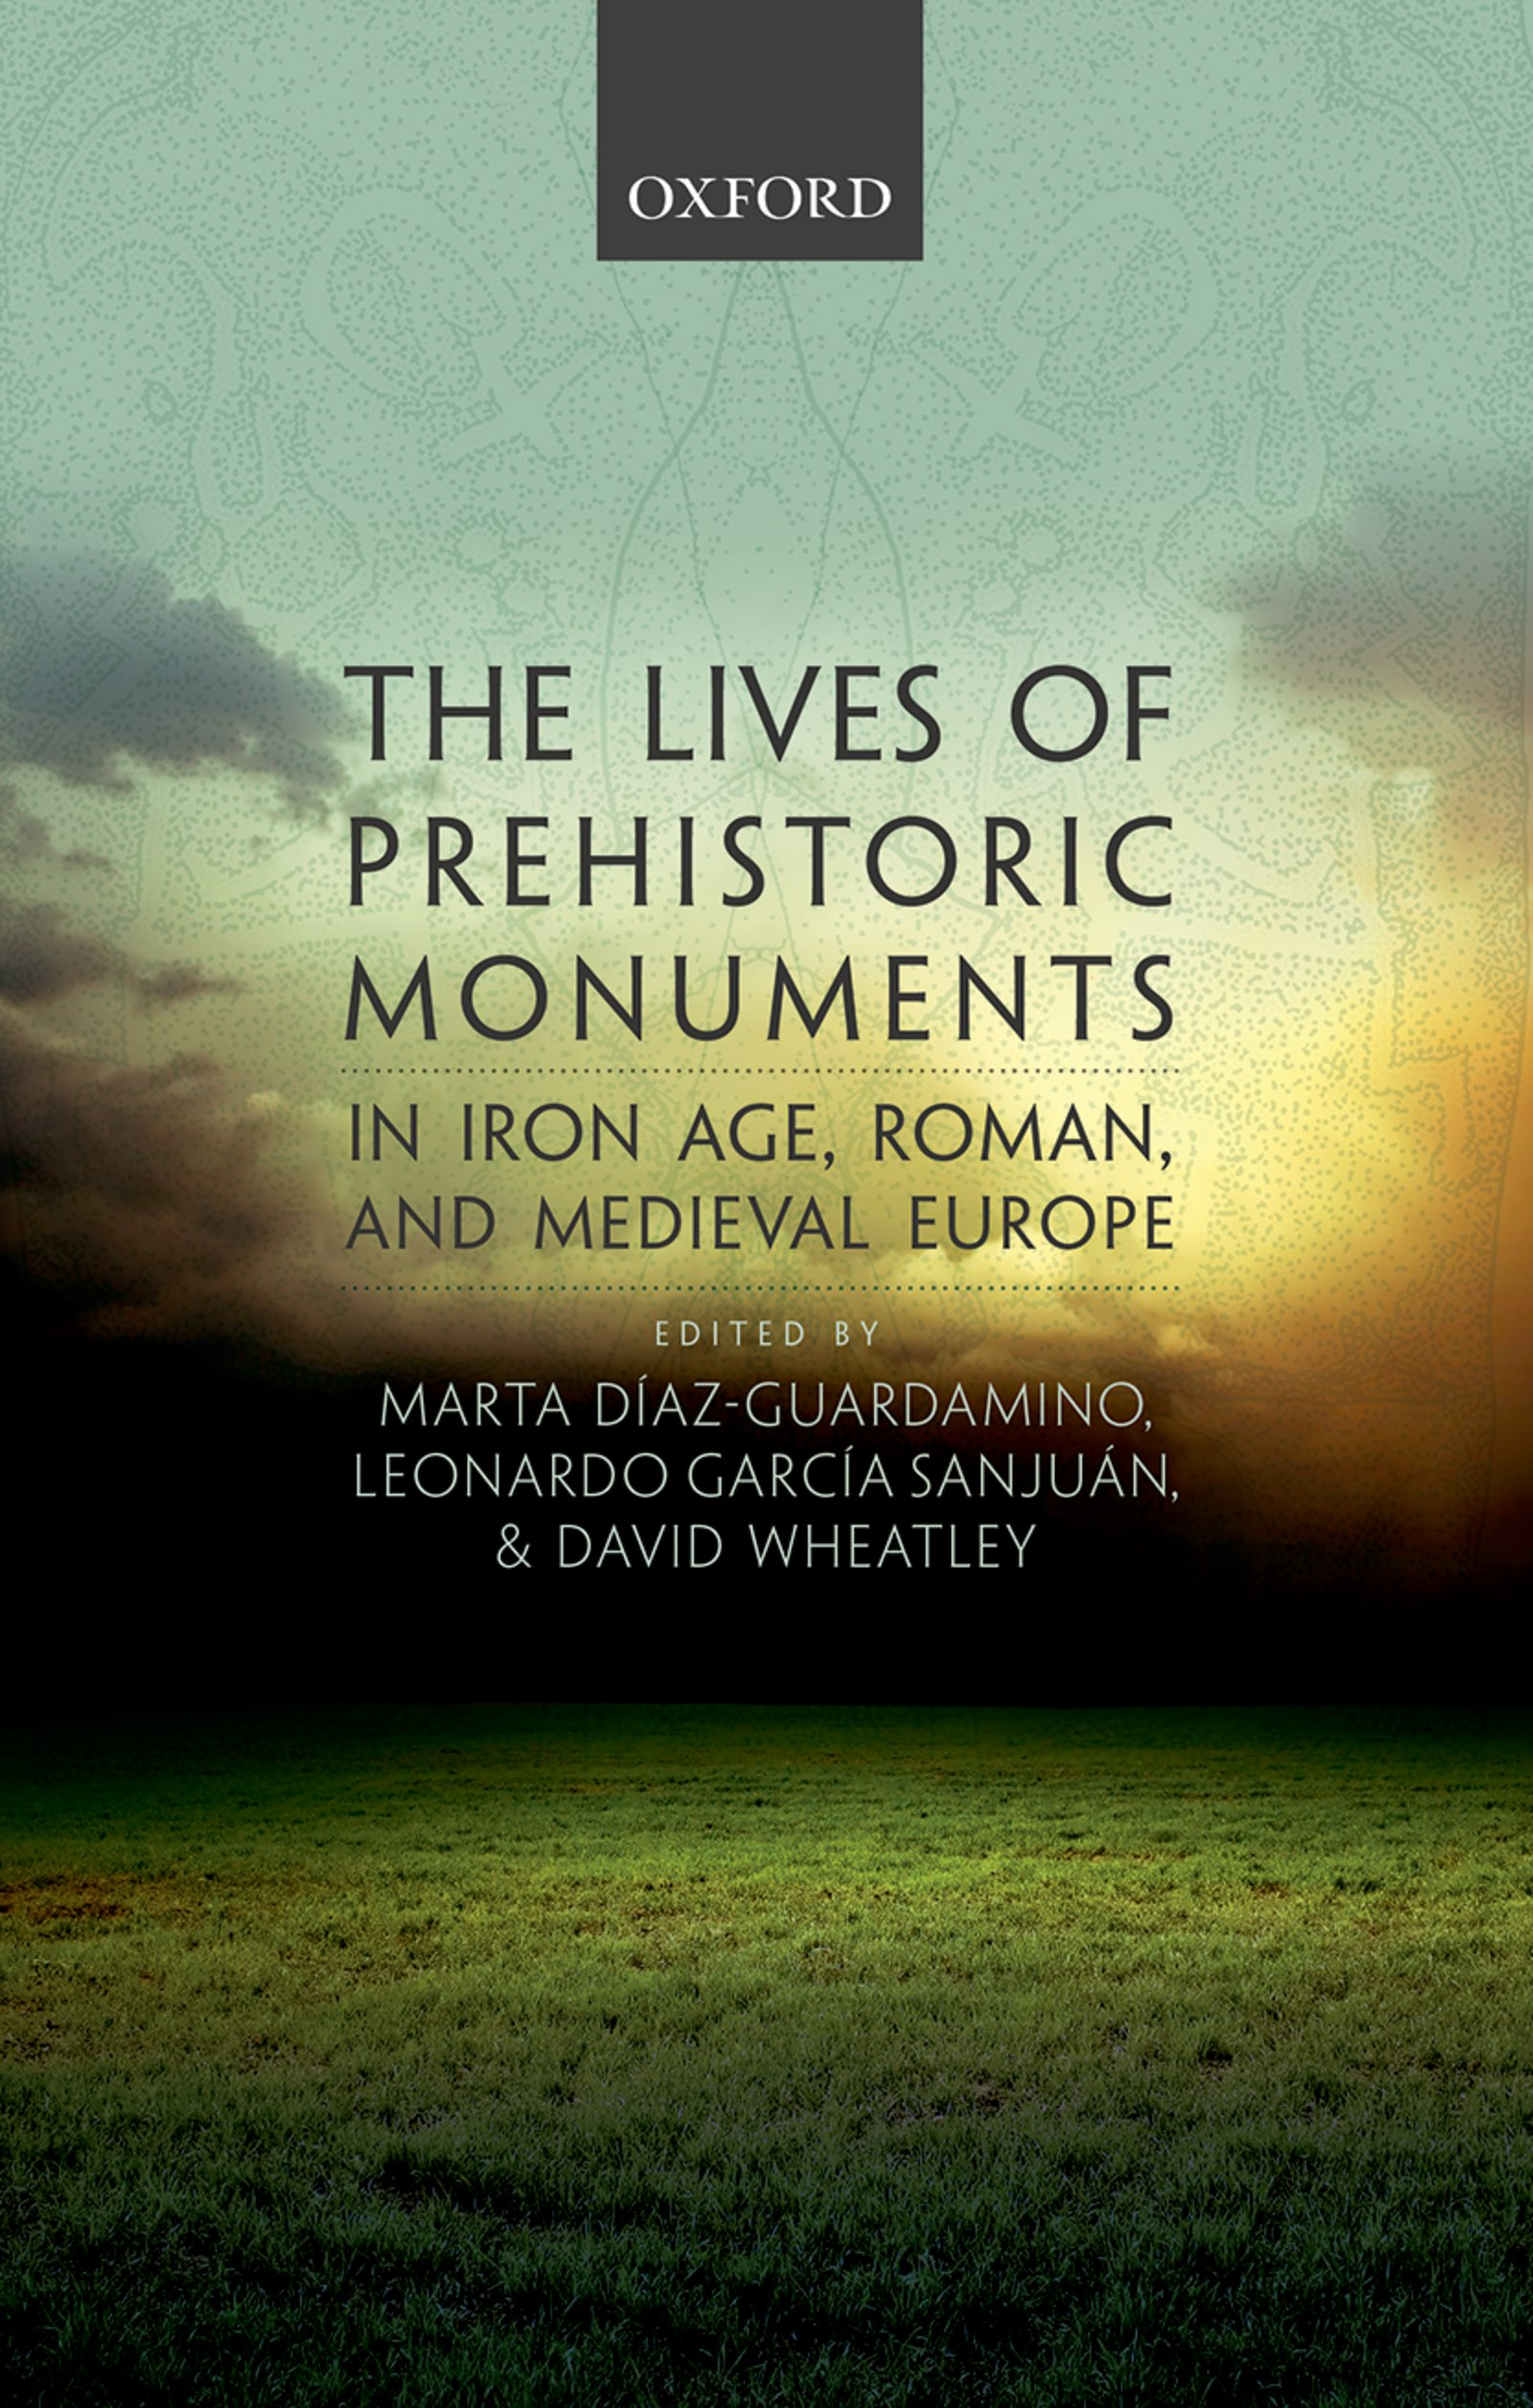 The Lives of Prehistoric Monuments in Iron Age, Roman, and Medieval Europe